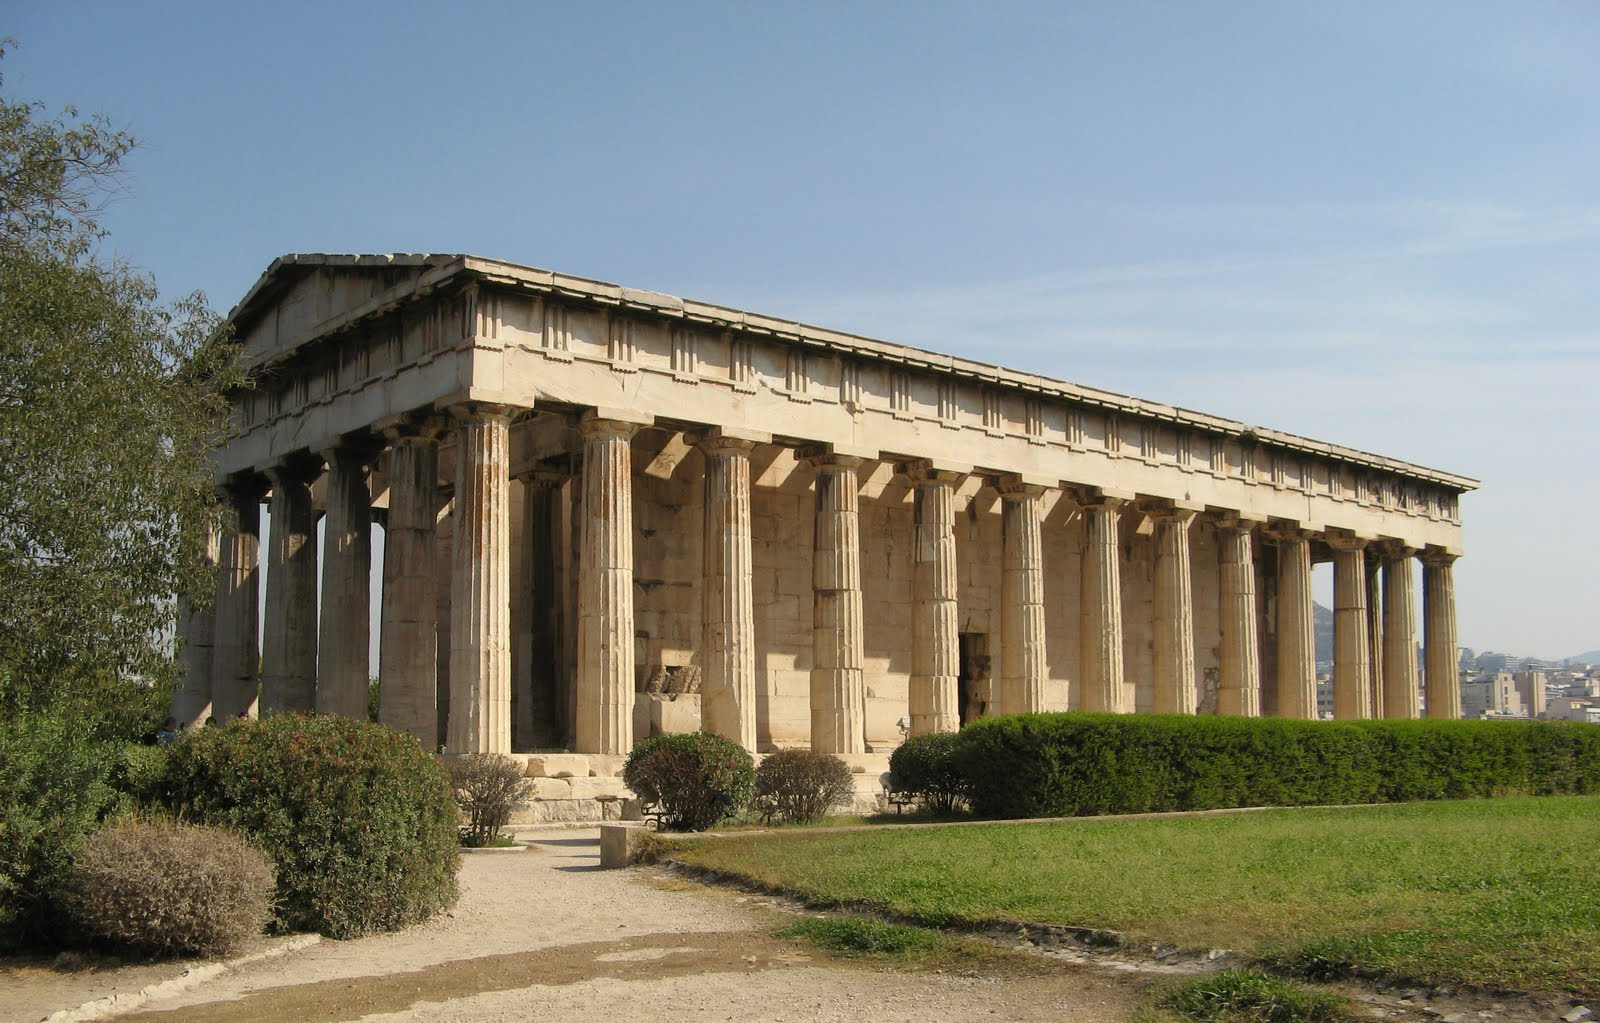 NOTED: The Doric Order |Grecian Architecture